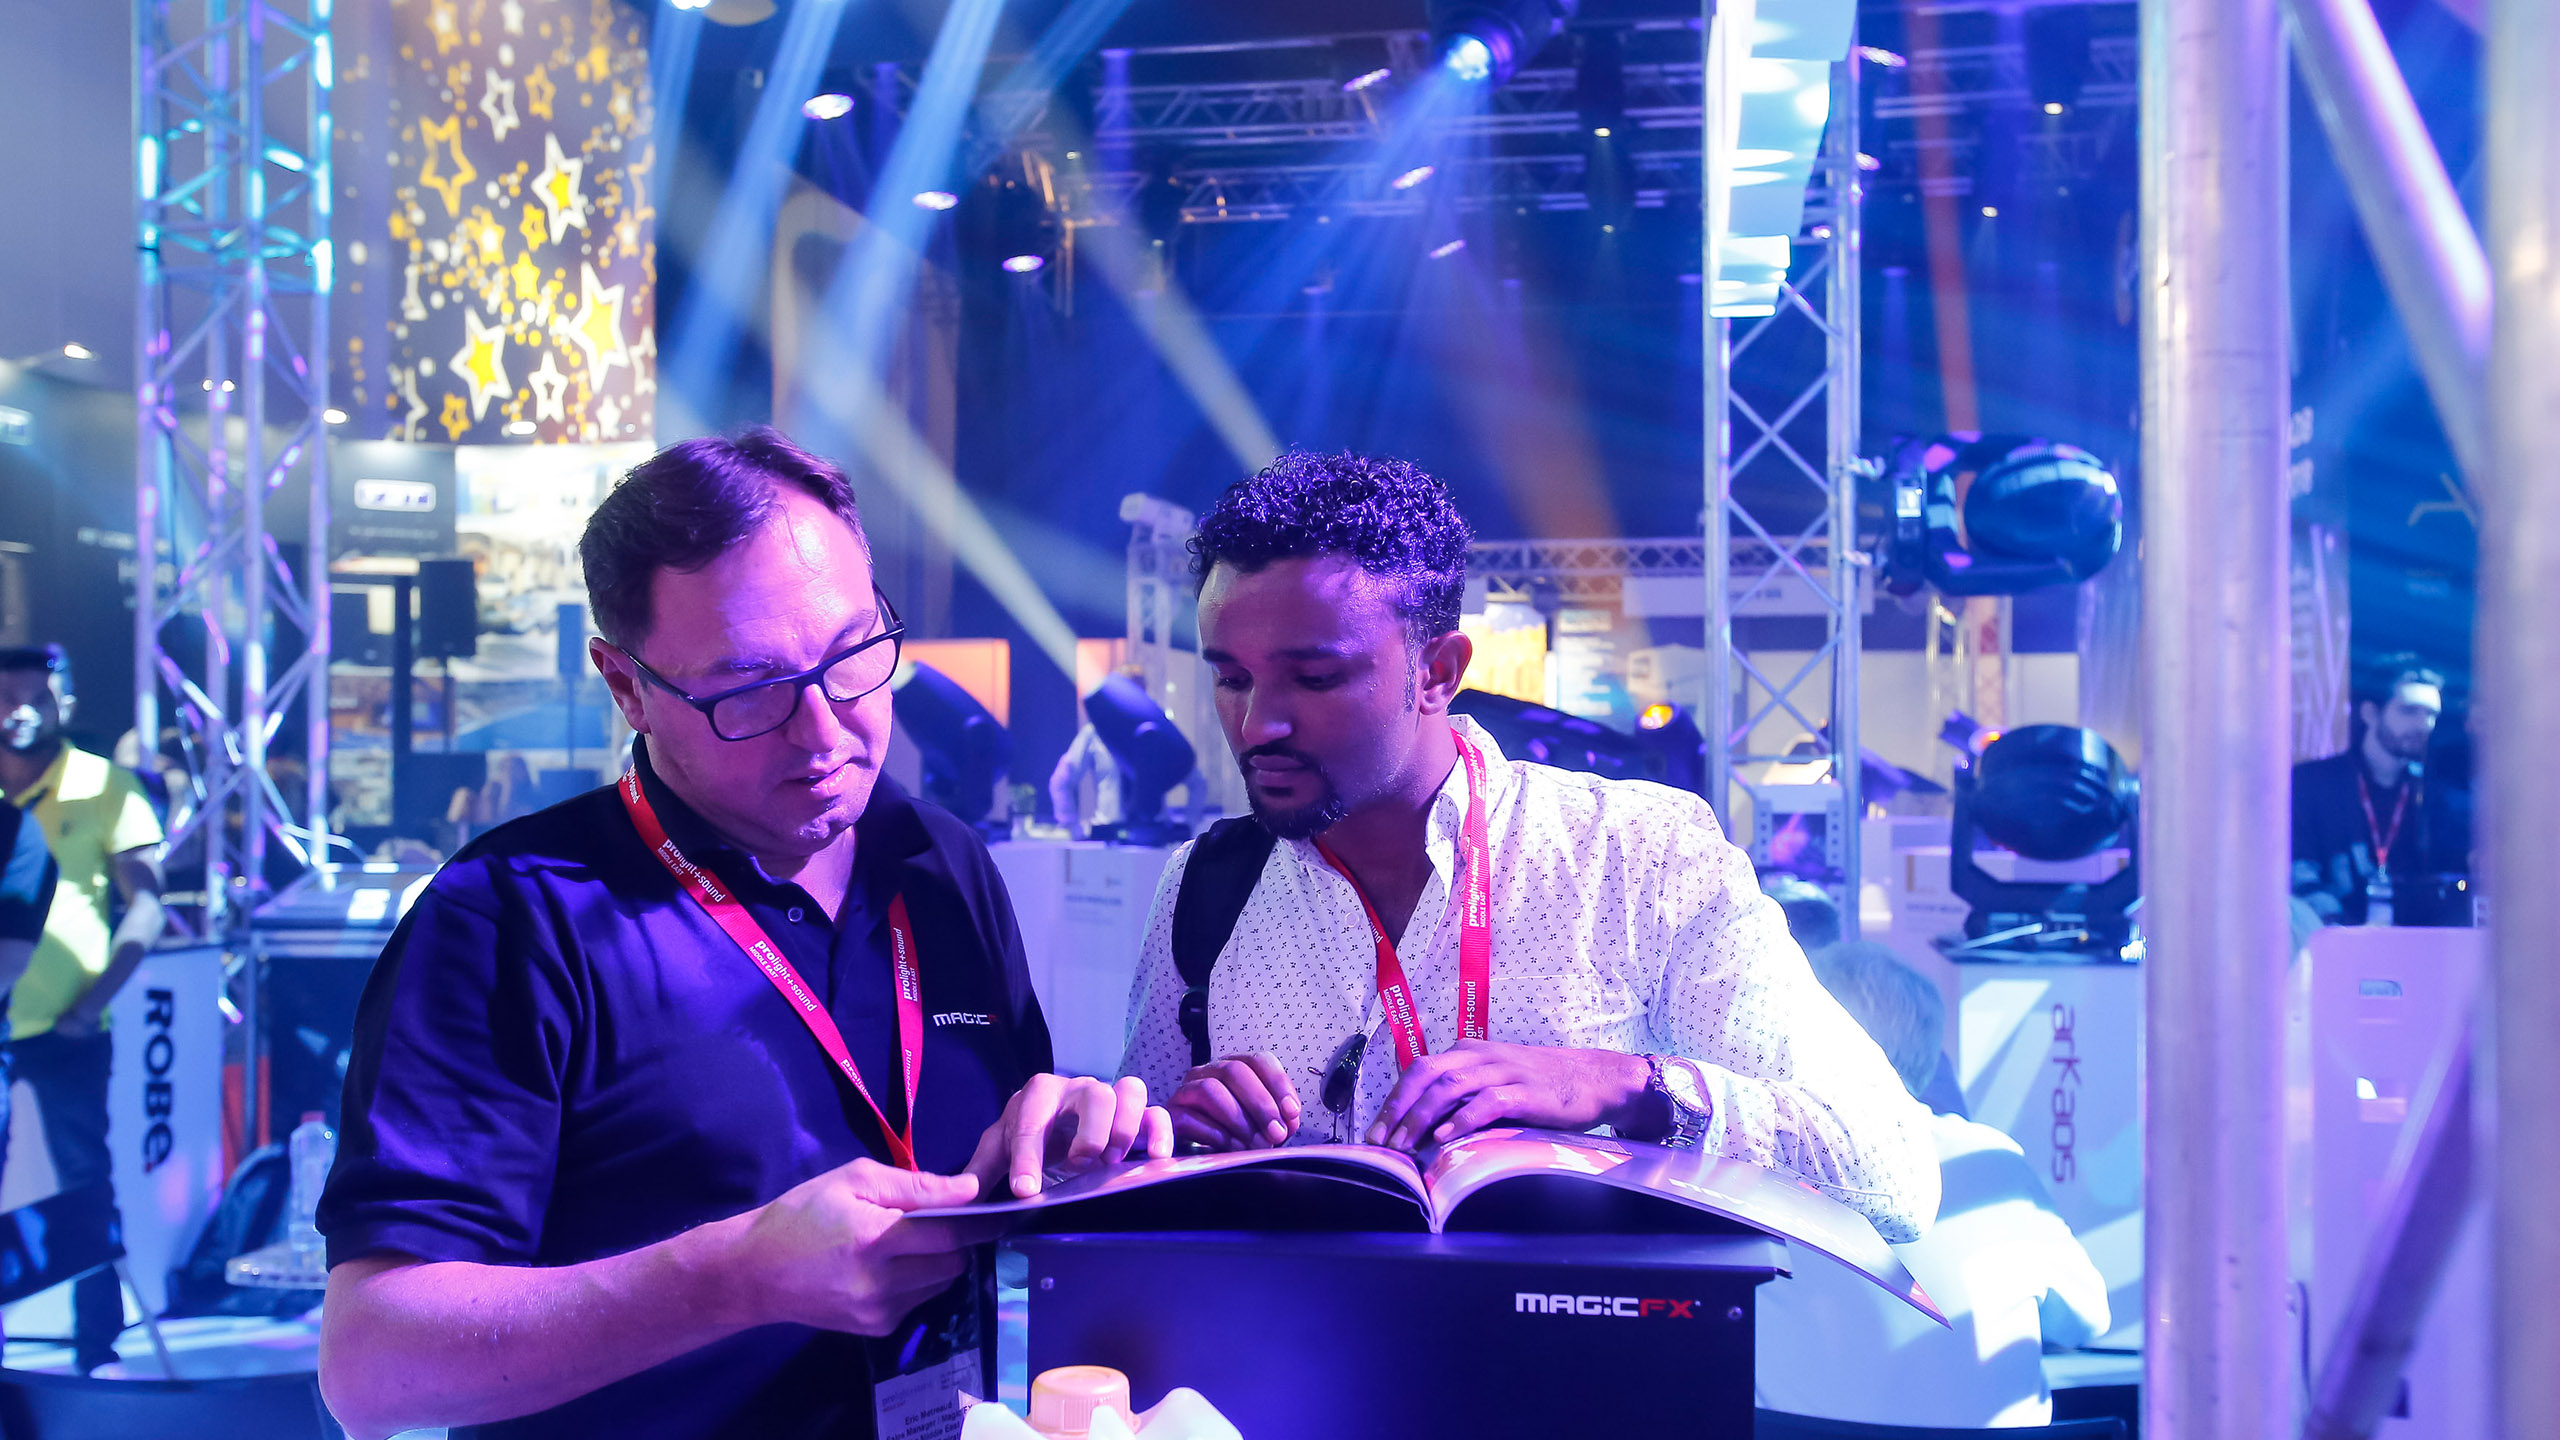 Prolight + Sound Middle East show image